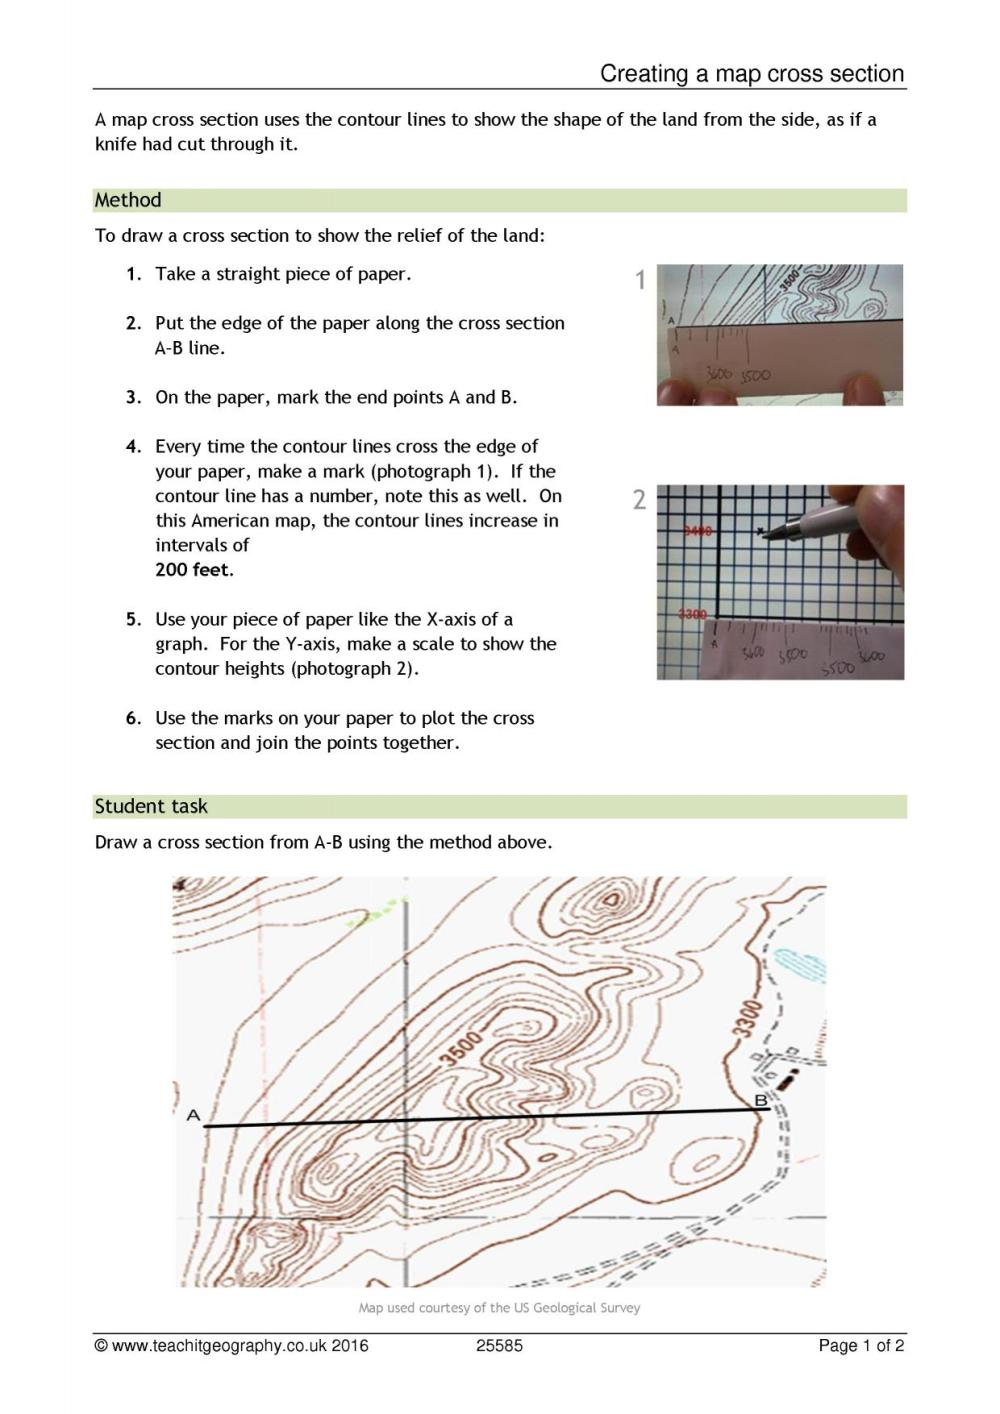 medium resolution of cross section geography how to draw a cross section in geography cross section in geography drawing a cross section using contour lines ks3